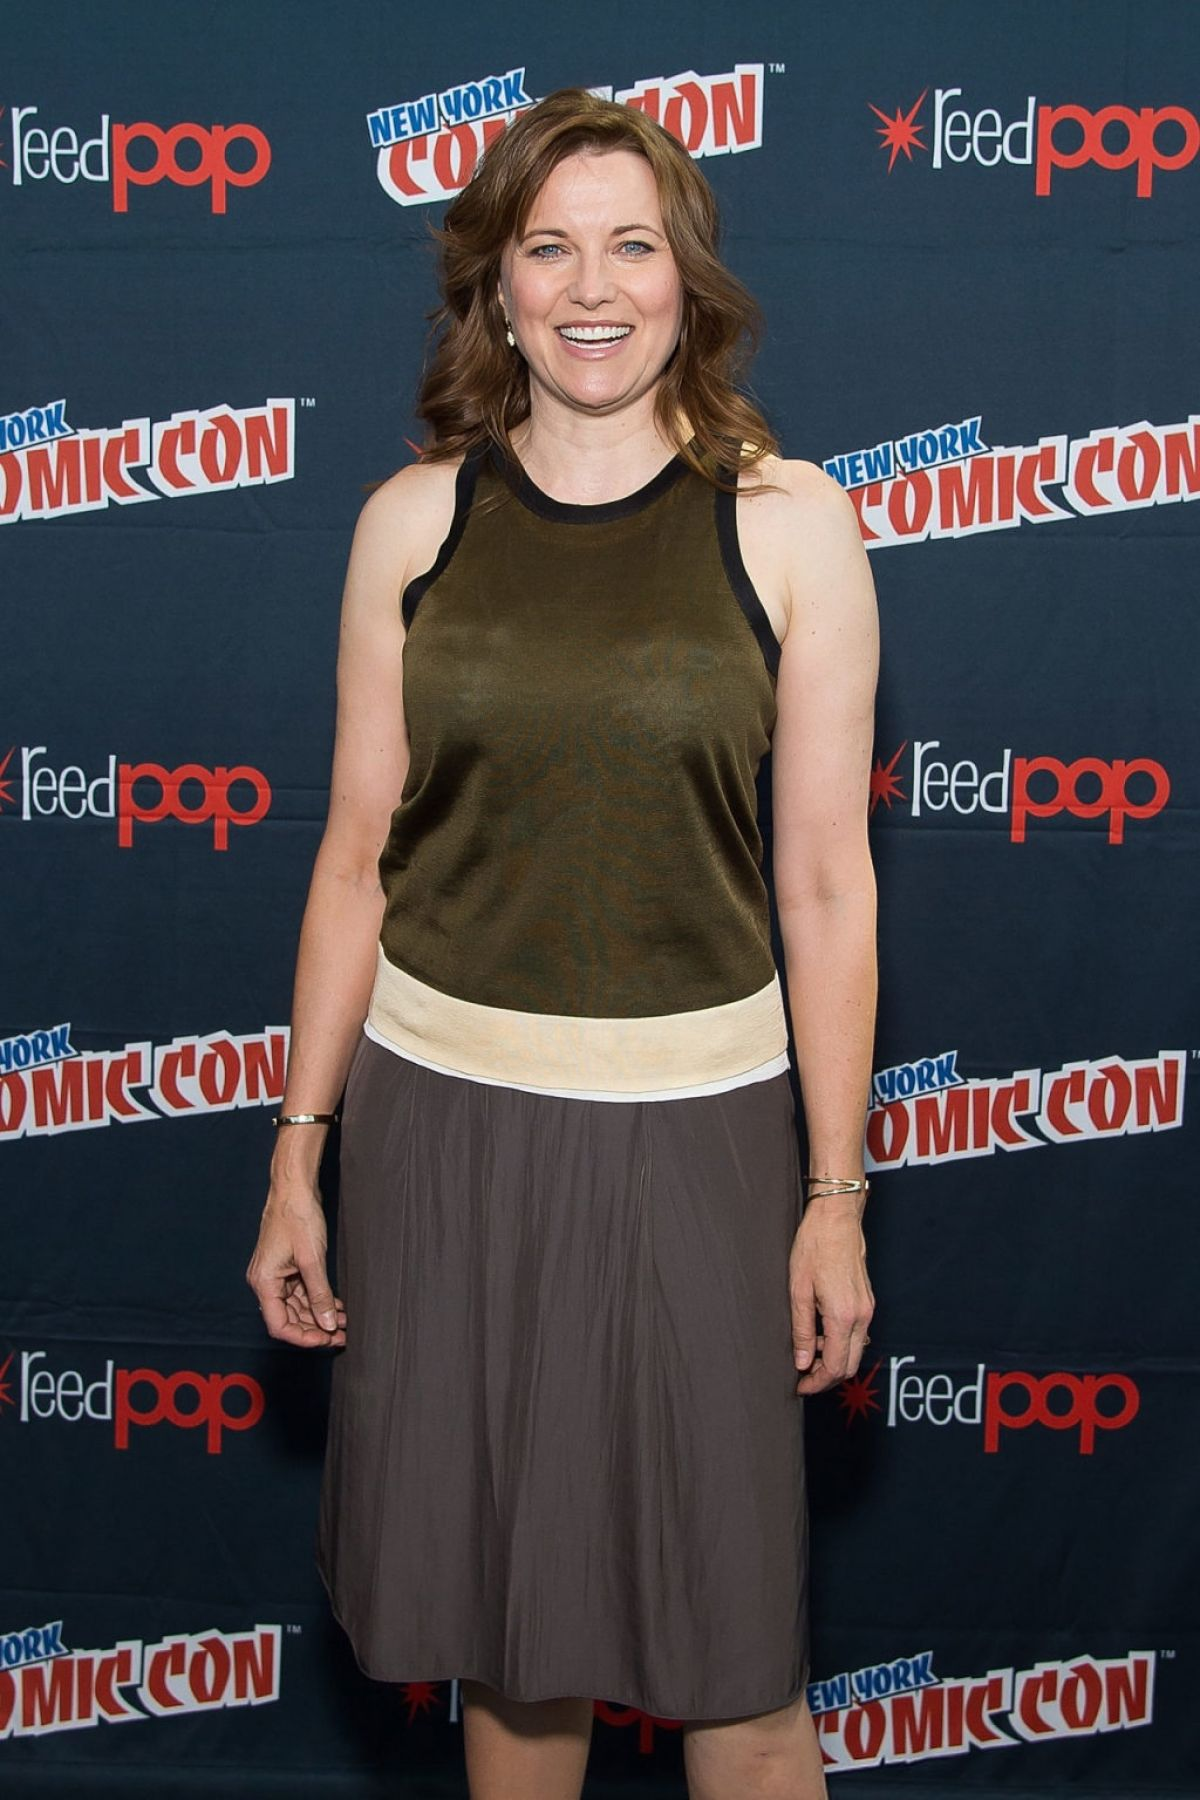 LUCY LAWLESS at Ash vs Evil Dead Panel at Comic-con in New York 10/10/2015